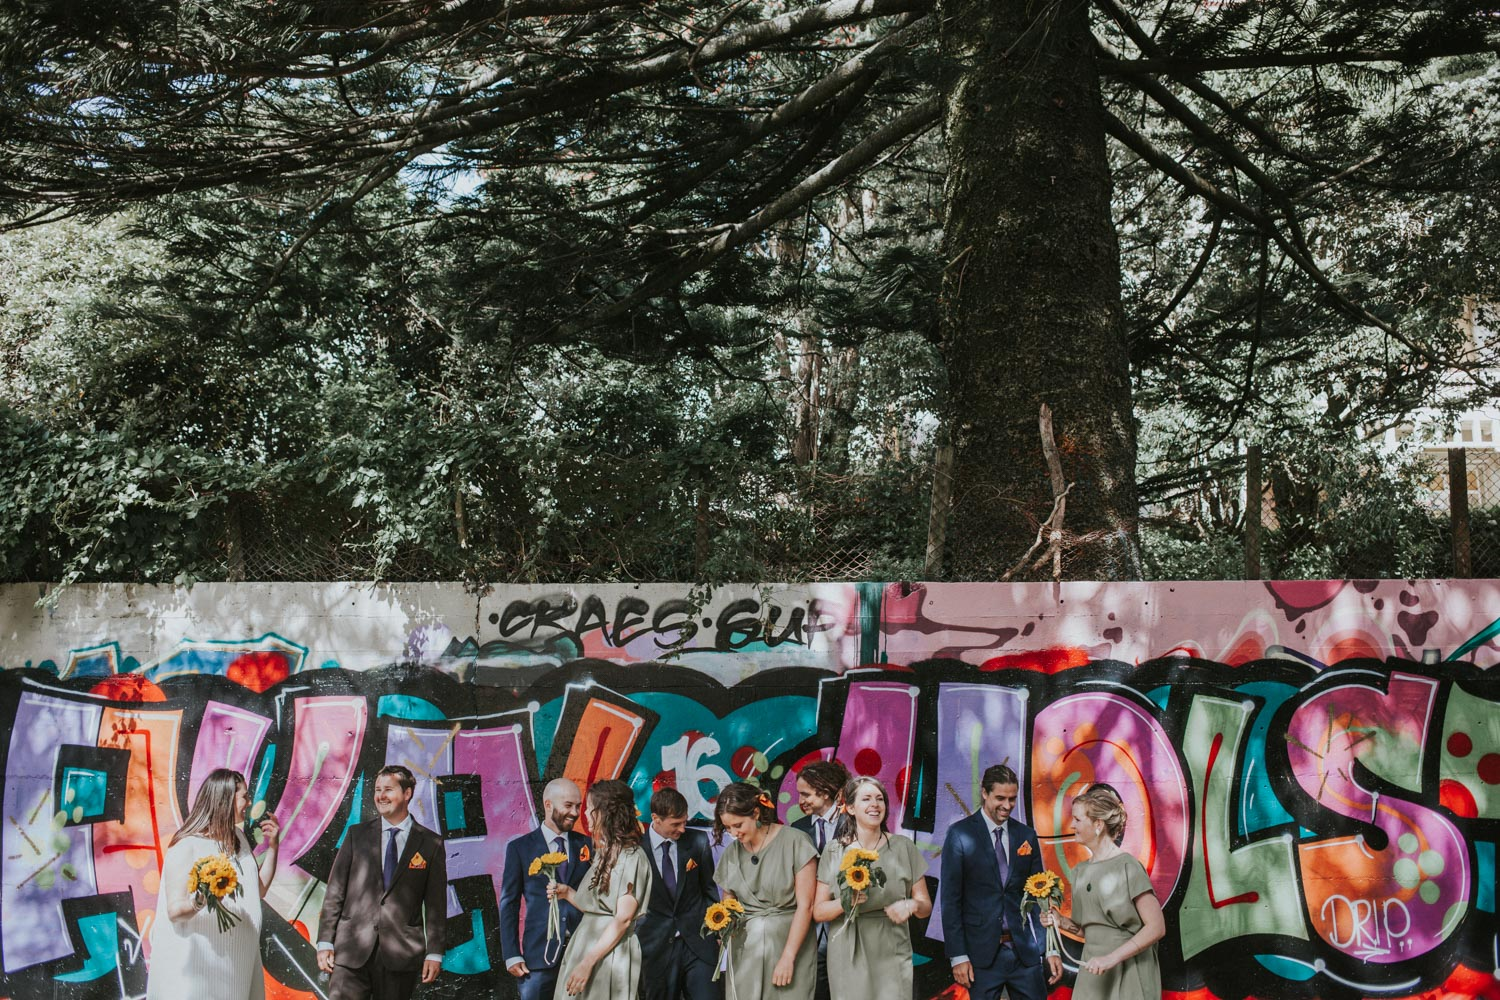 Bridal party standing in front of Graffiti wall for bridal photos